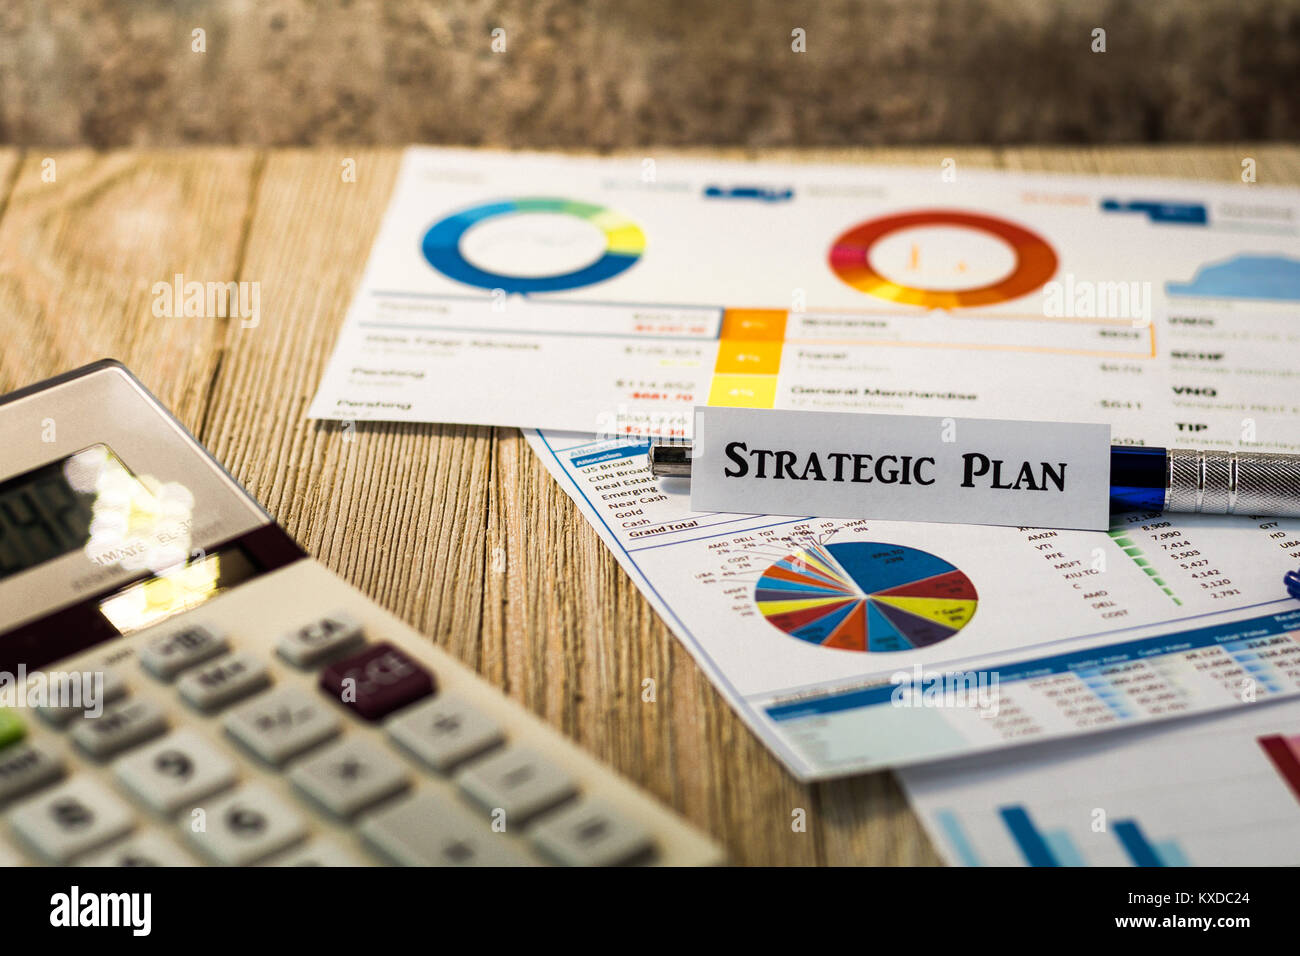 Strategic Plan business finance concept with charts and graphs on wooden board - Stock Image